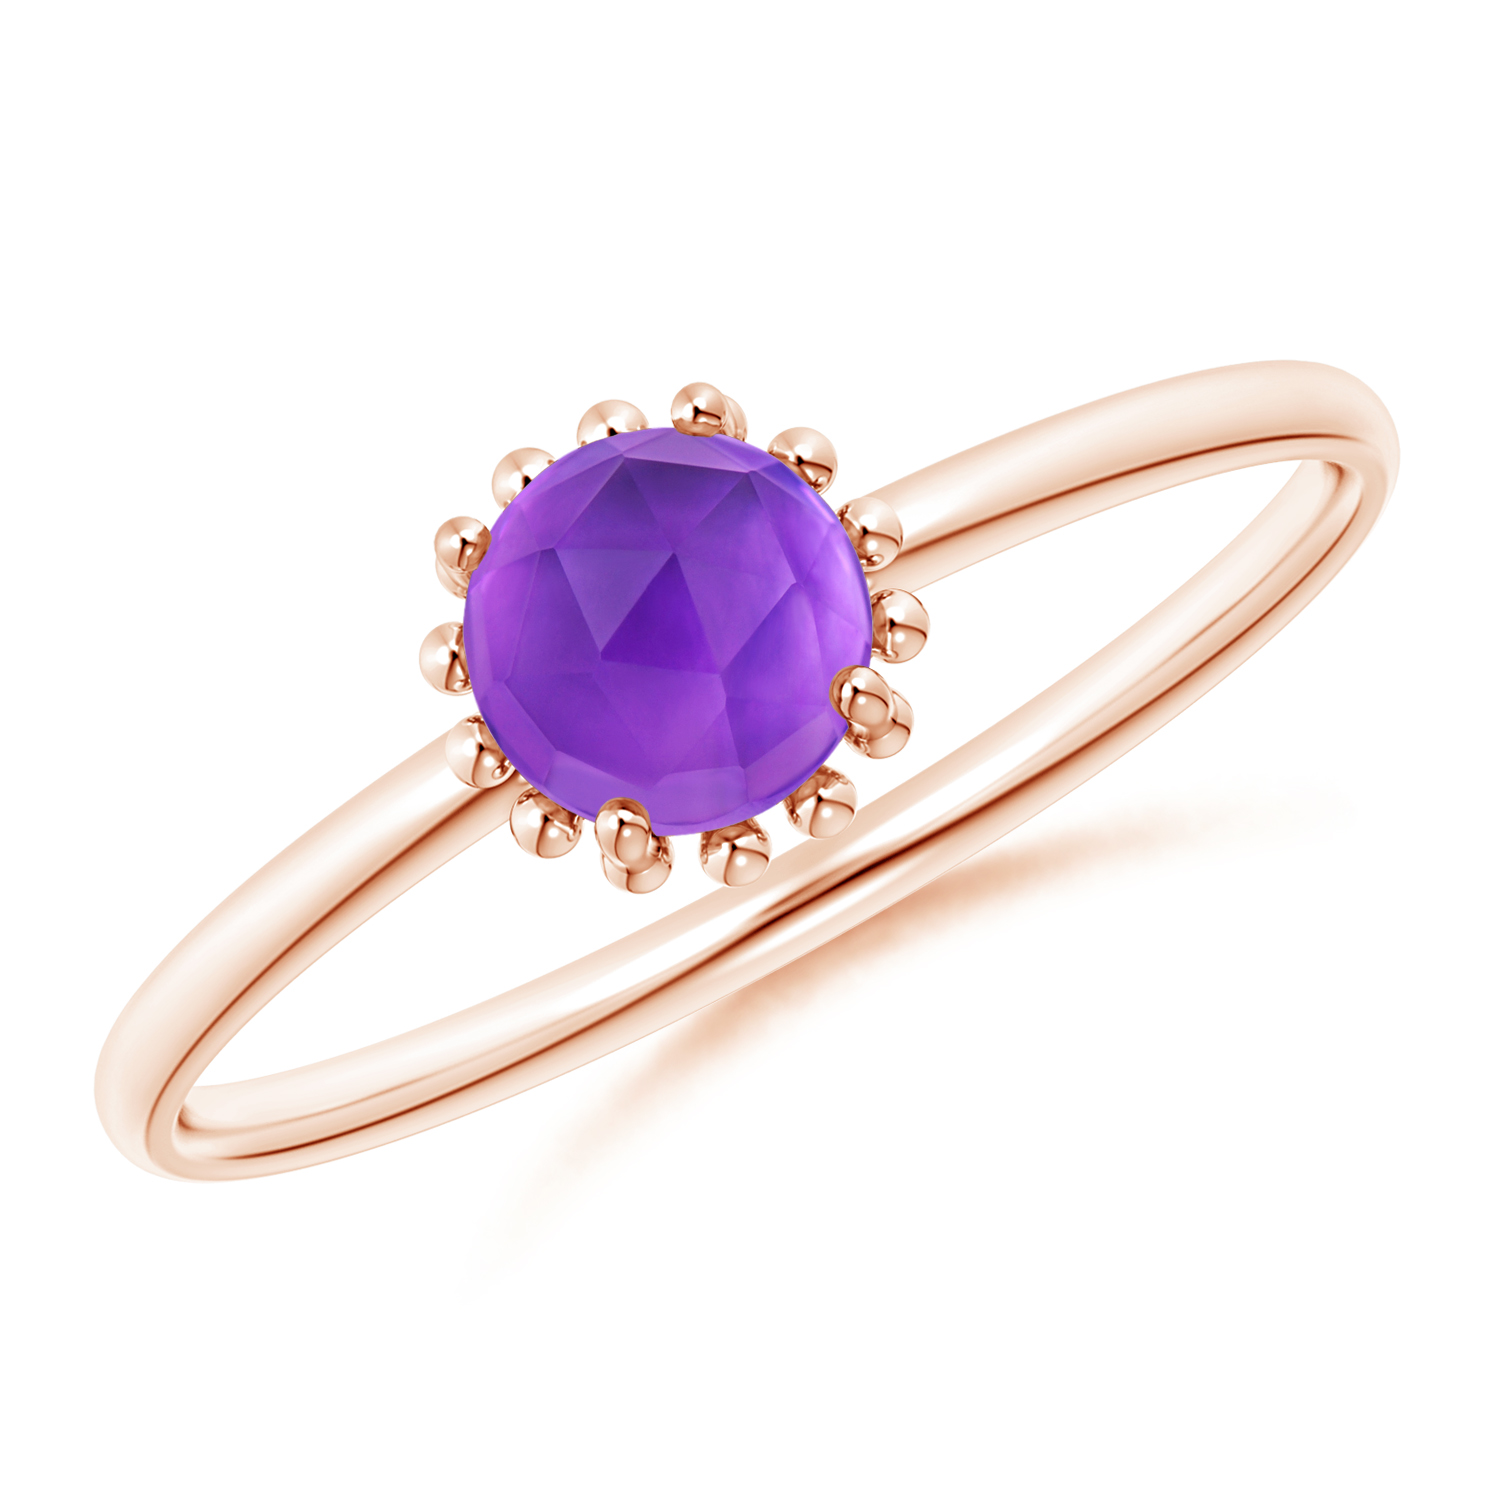 Solitaire Amethyst Ring with Beaded Halo - Angara.com